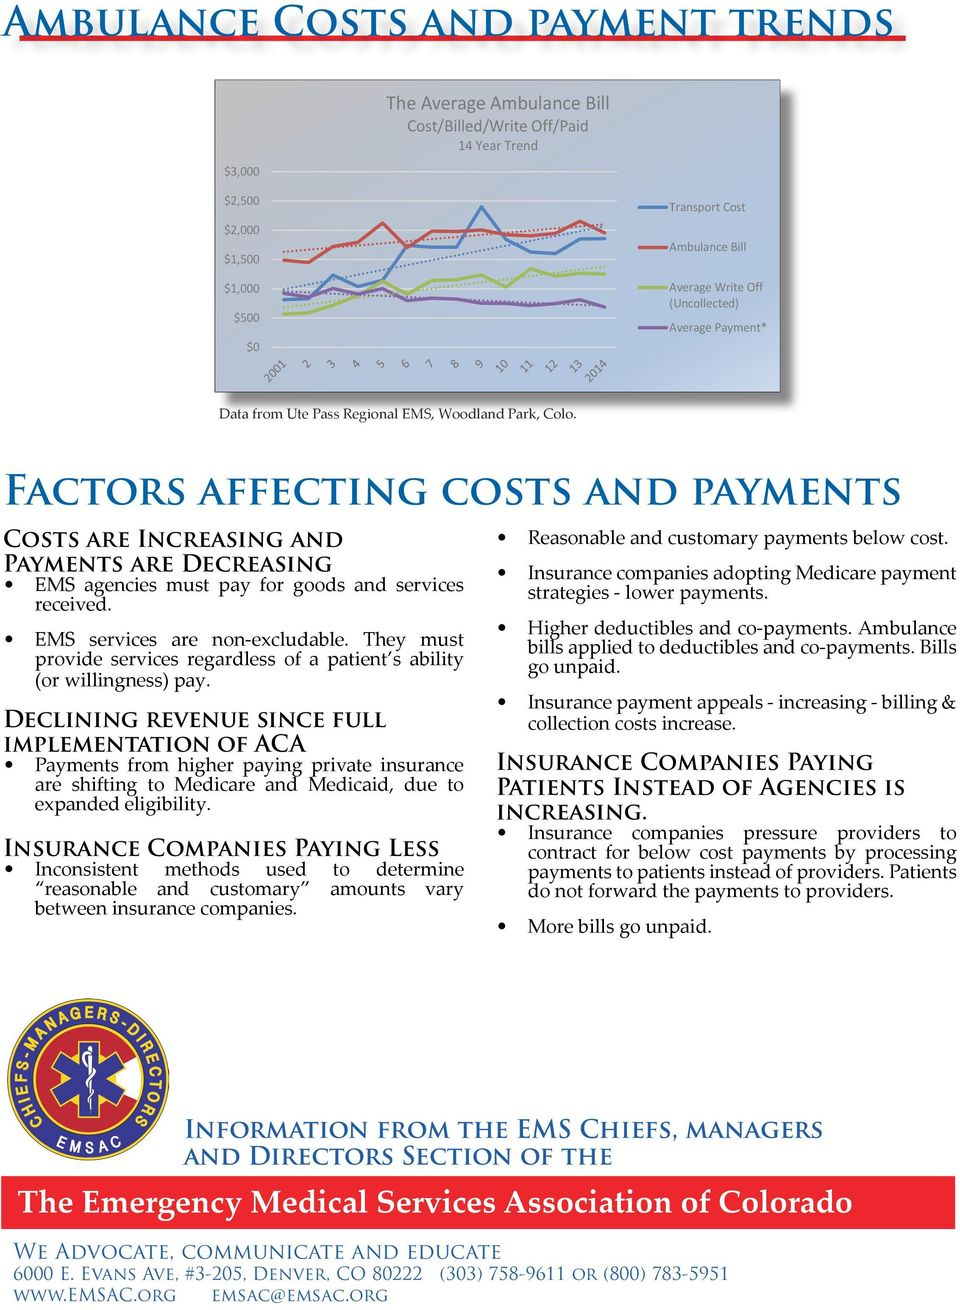 Factors Impacting Ambulance Costs & Payments Factors affecting costs and payments * Costs are Increasing - Payments are Decreasing - EMS agencies must pay for goods and services received.